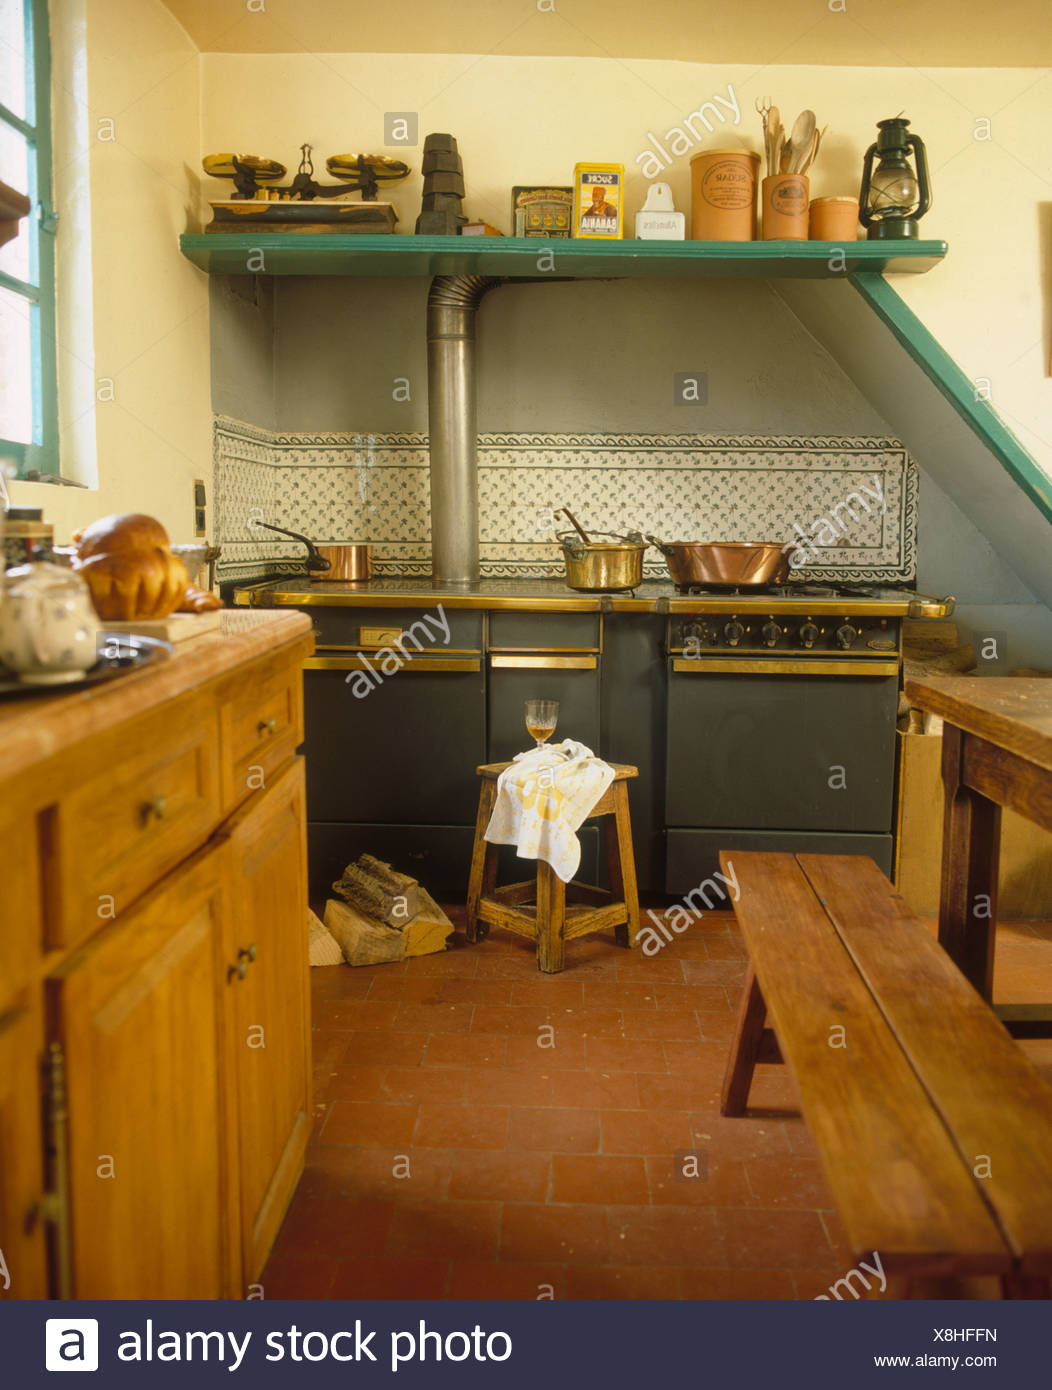 Range Oven And Quarry Tiled Floor In French Country Kitchen With Rustic Wooden Bench Table